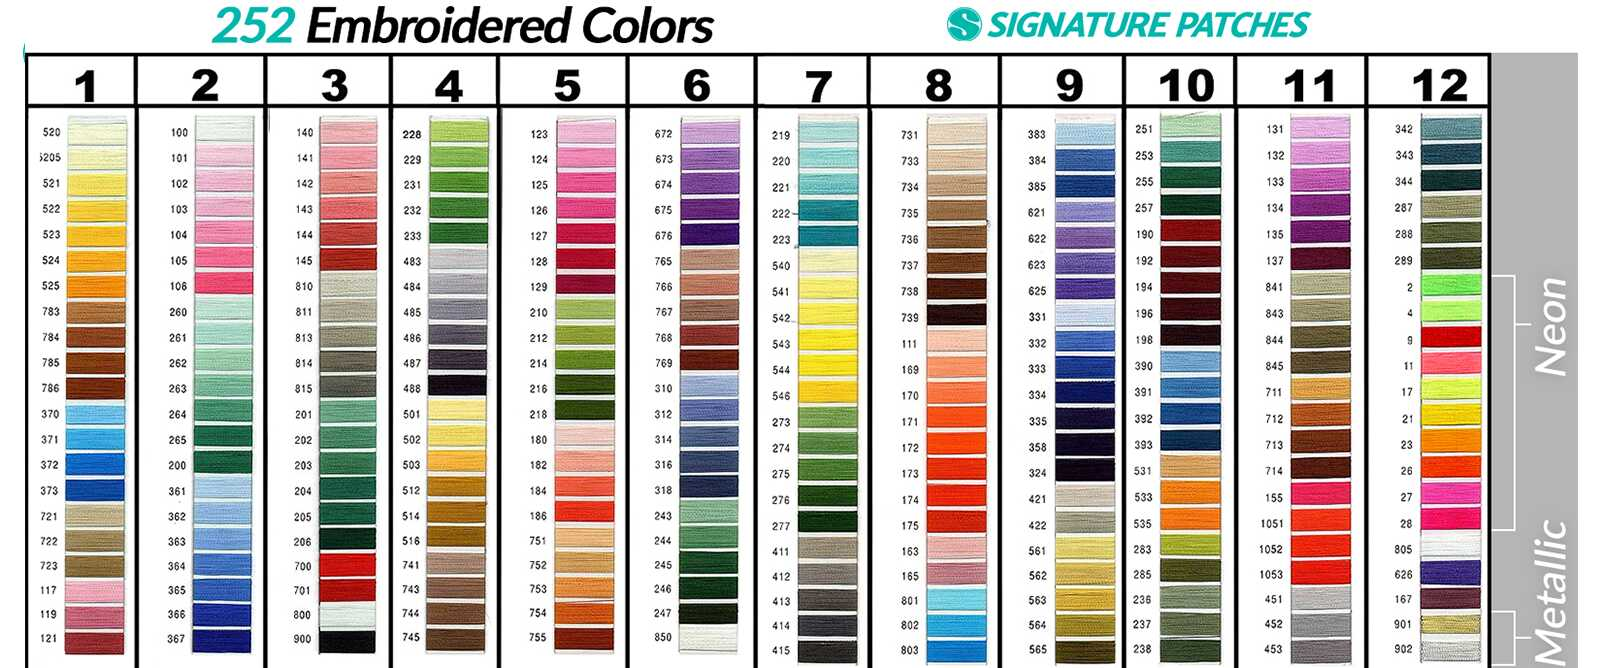 SignaturePatches - Embroidery Thread Colors